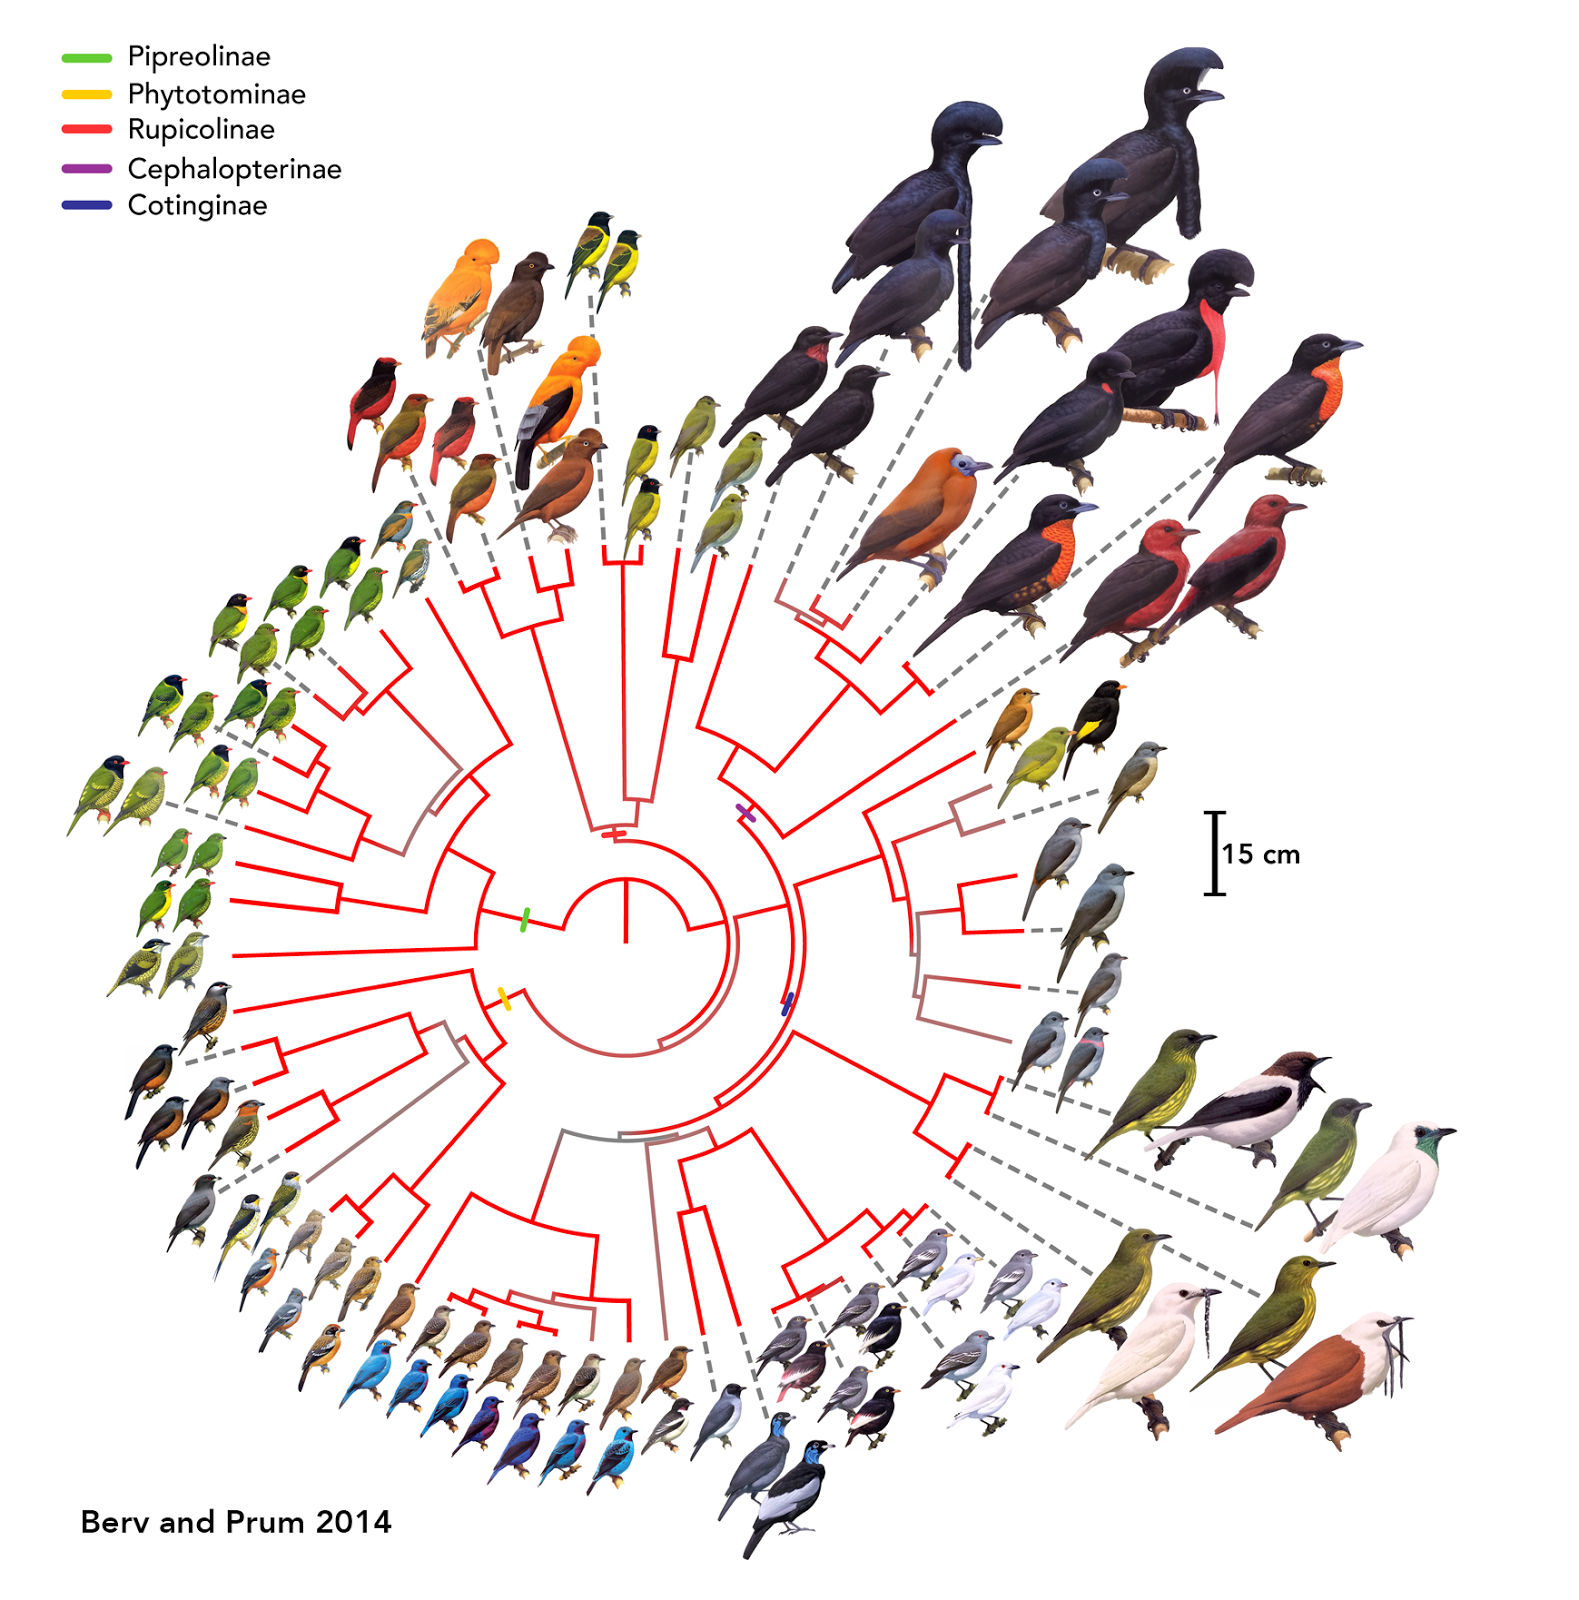 evolutionary analysis of culex species Based on phylogenetic analysis, we found that intron z should present in the common ancestor of arthropod species, more than 420 ma in addition, we found that sophophora subgenus species and mosquito ( culex pipiens ) lost intron z independently, showing evolutionary convergence.